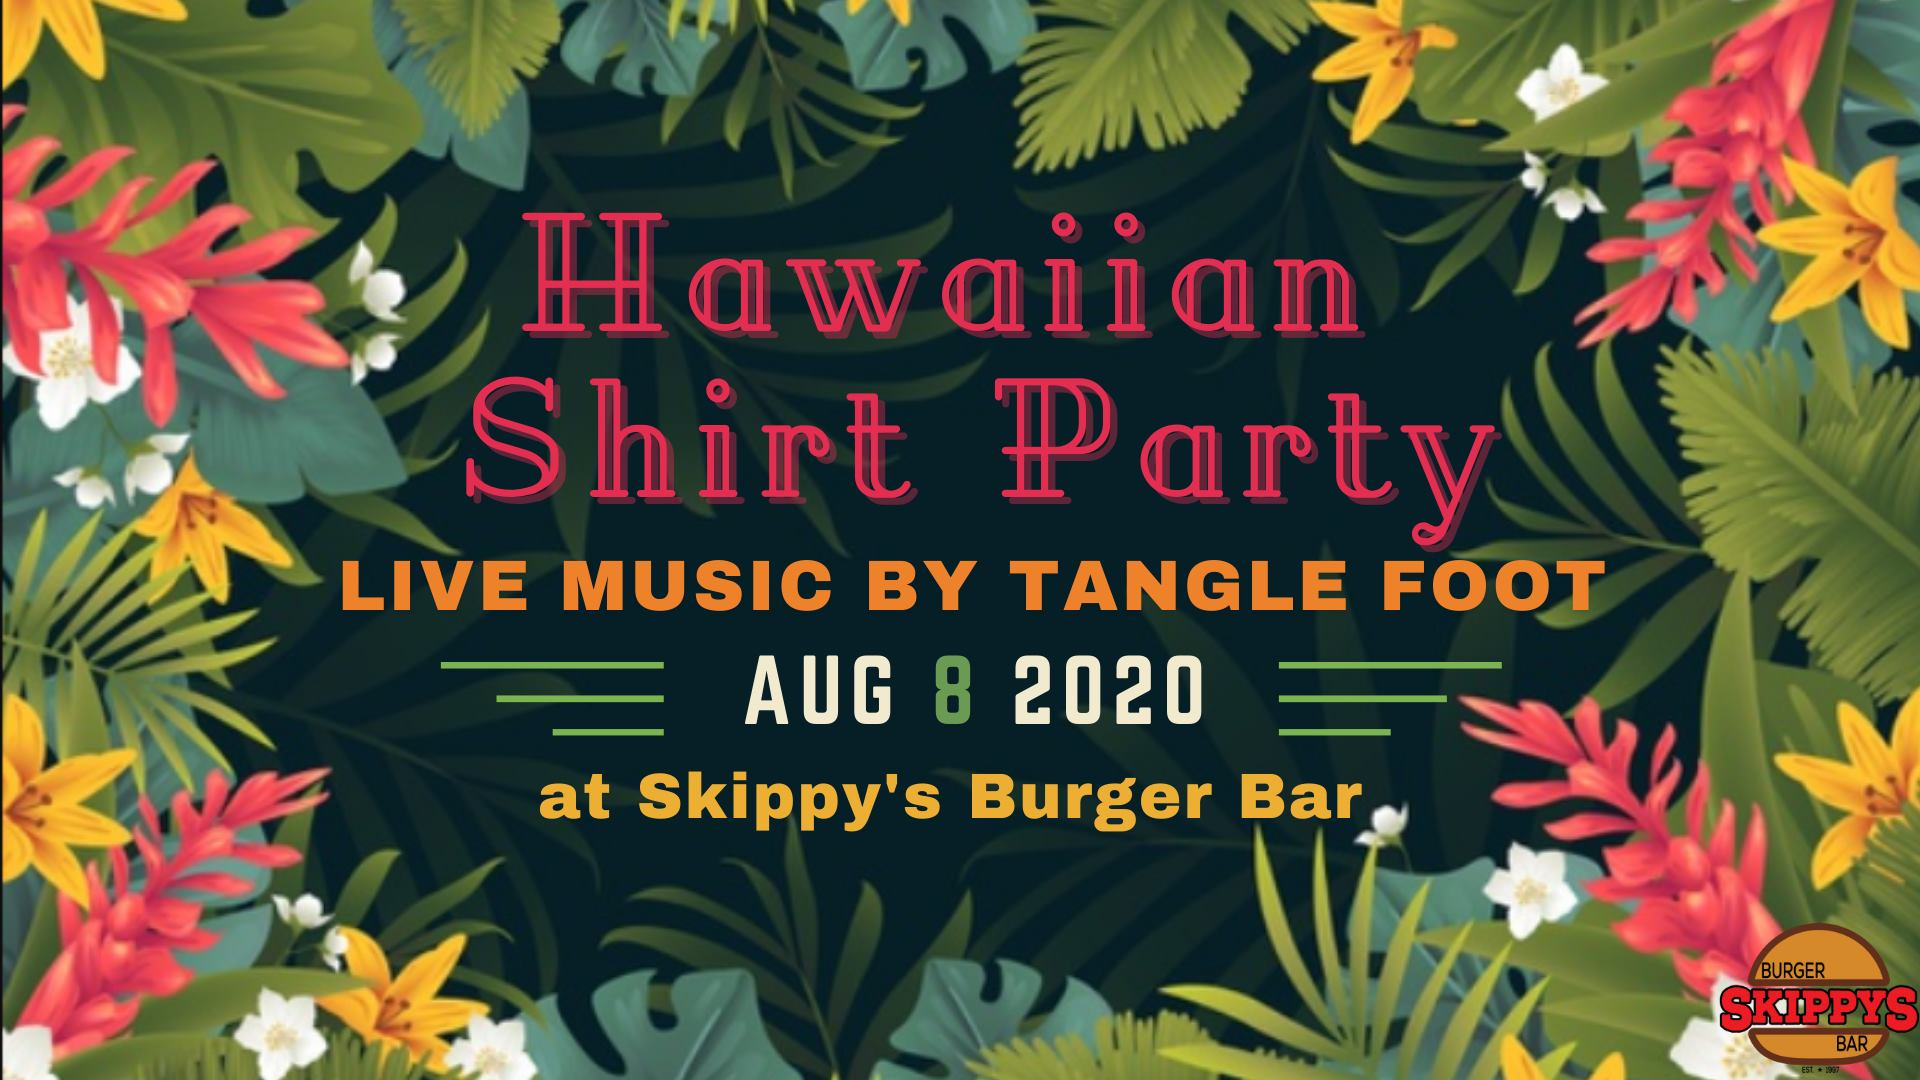 HawaiianParty